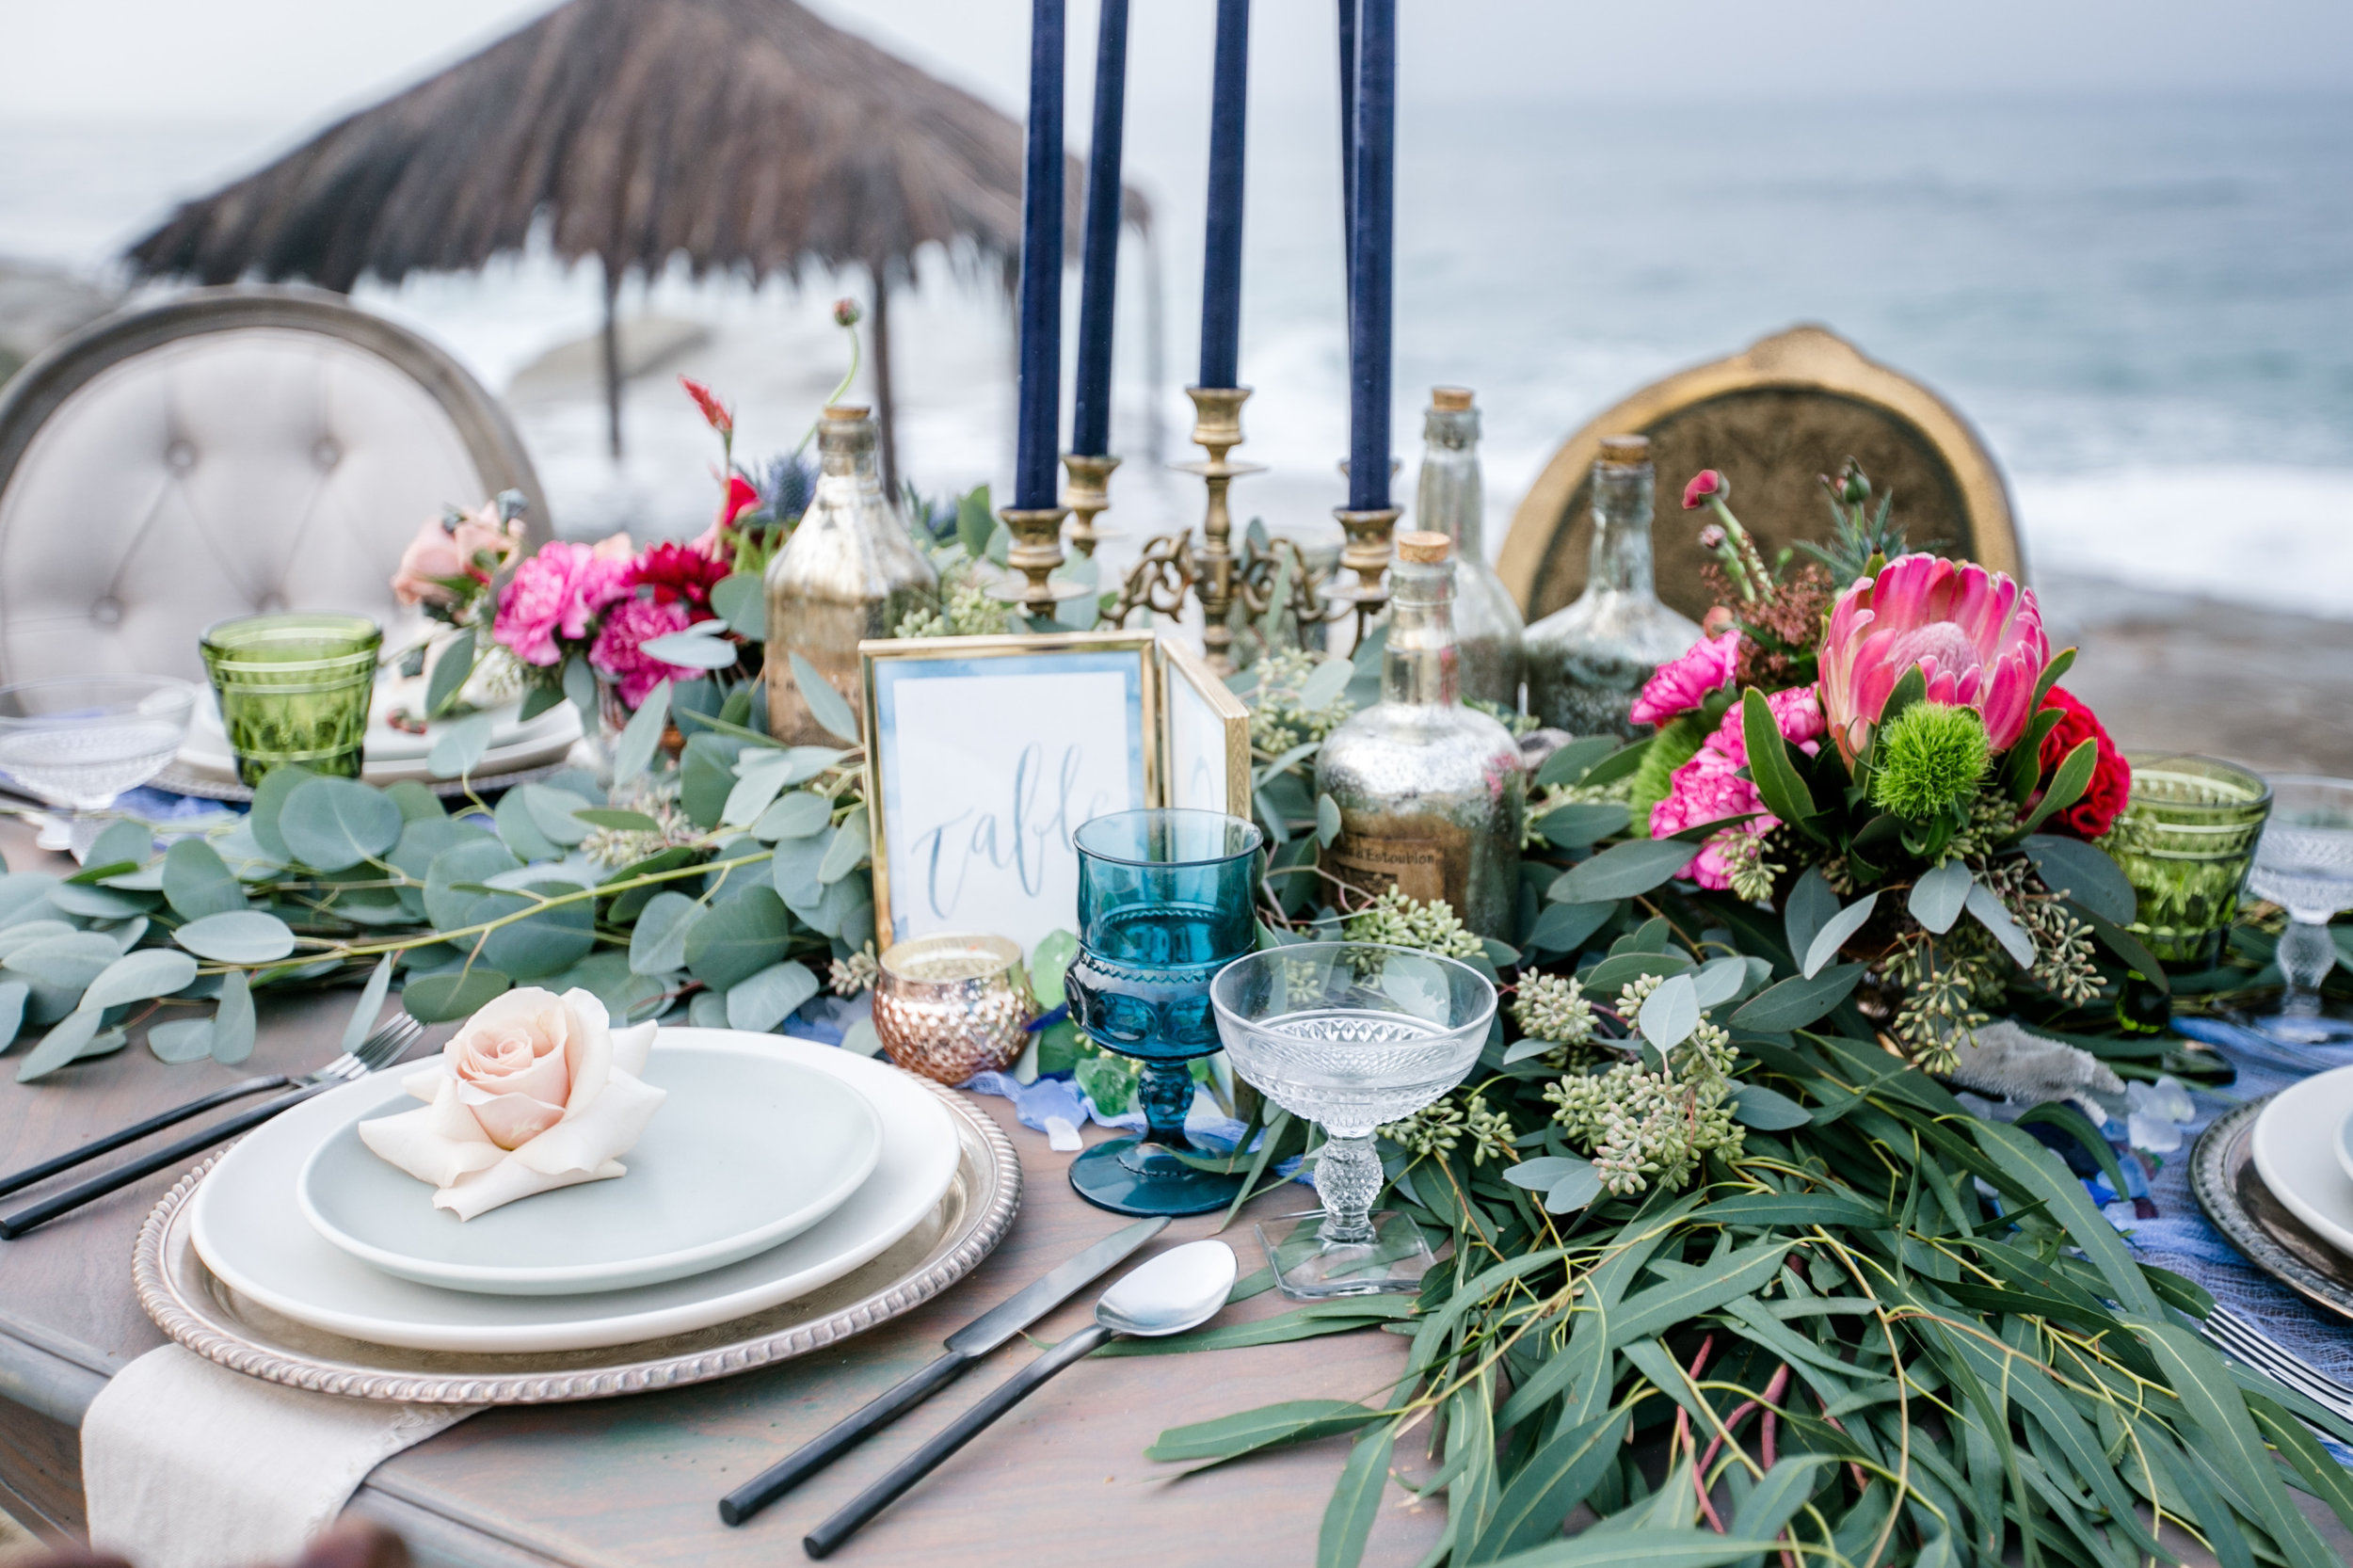 Mint.Daily - Do you have all the elements in place, but need help setting up a beautiful space on the day of your event? I'm here to help!